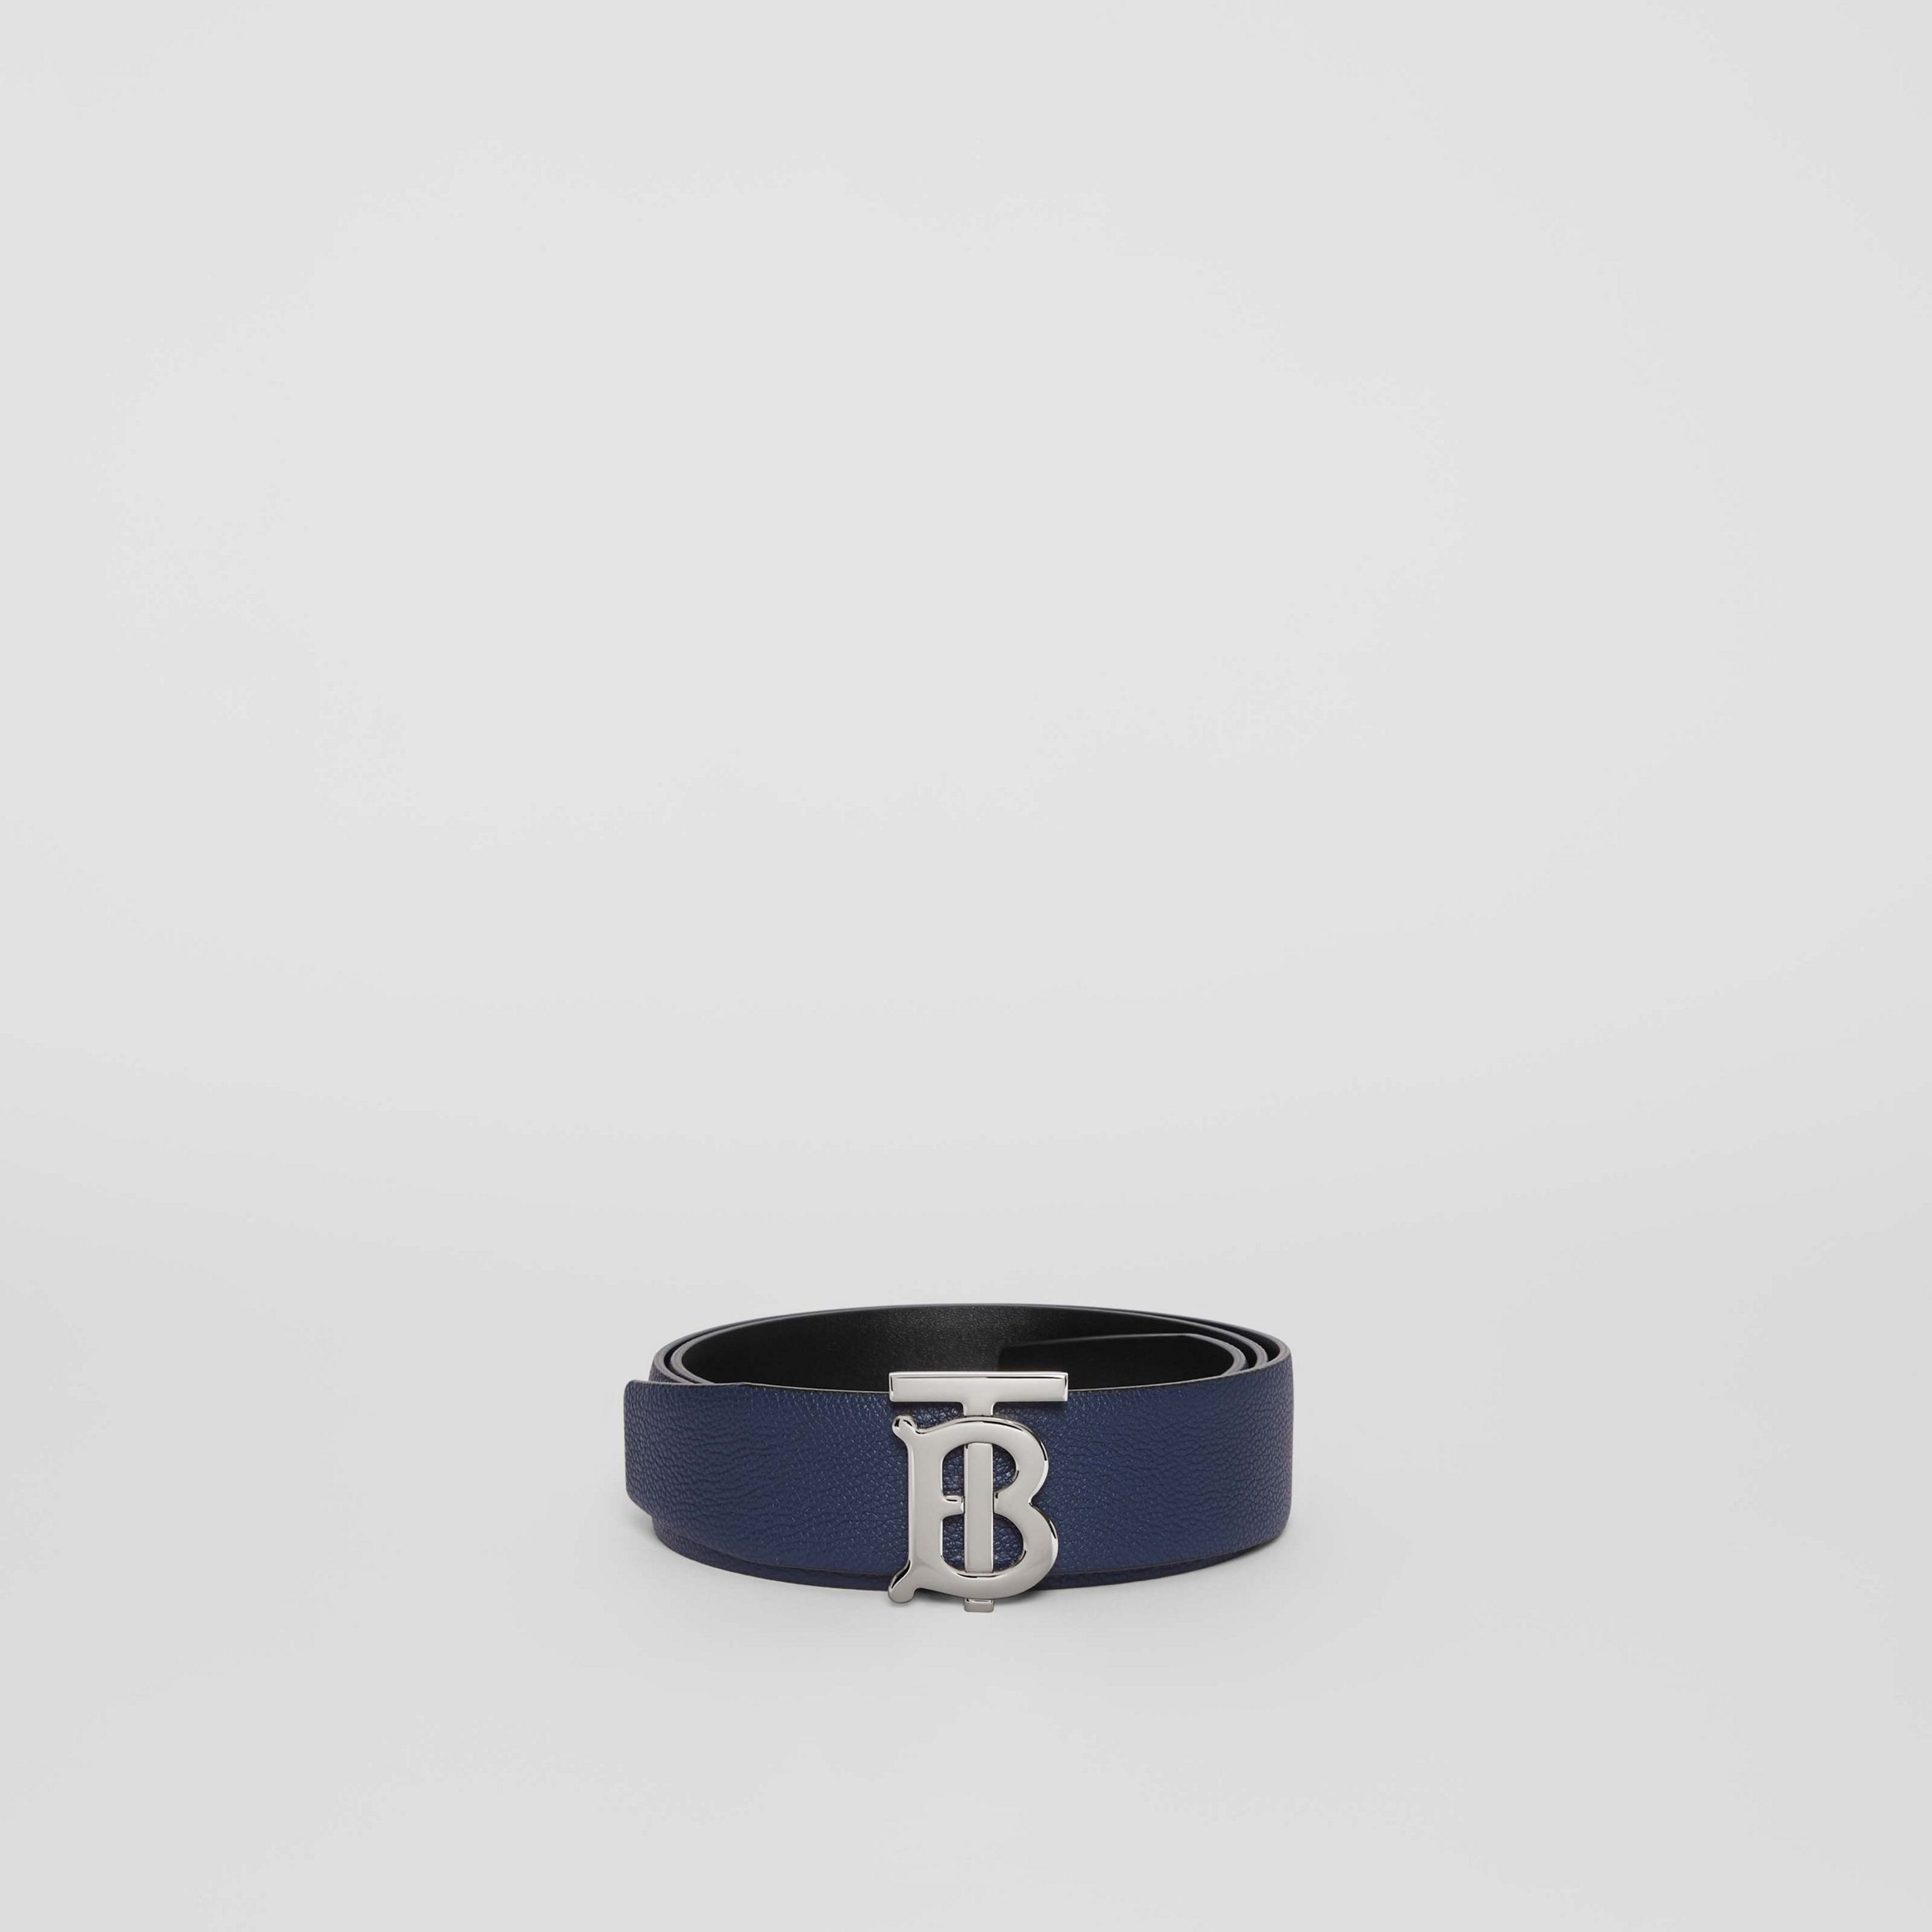 Reversible Monogram Motif Leather Belt in Navy/black - Men | Burberry - 4